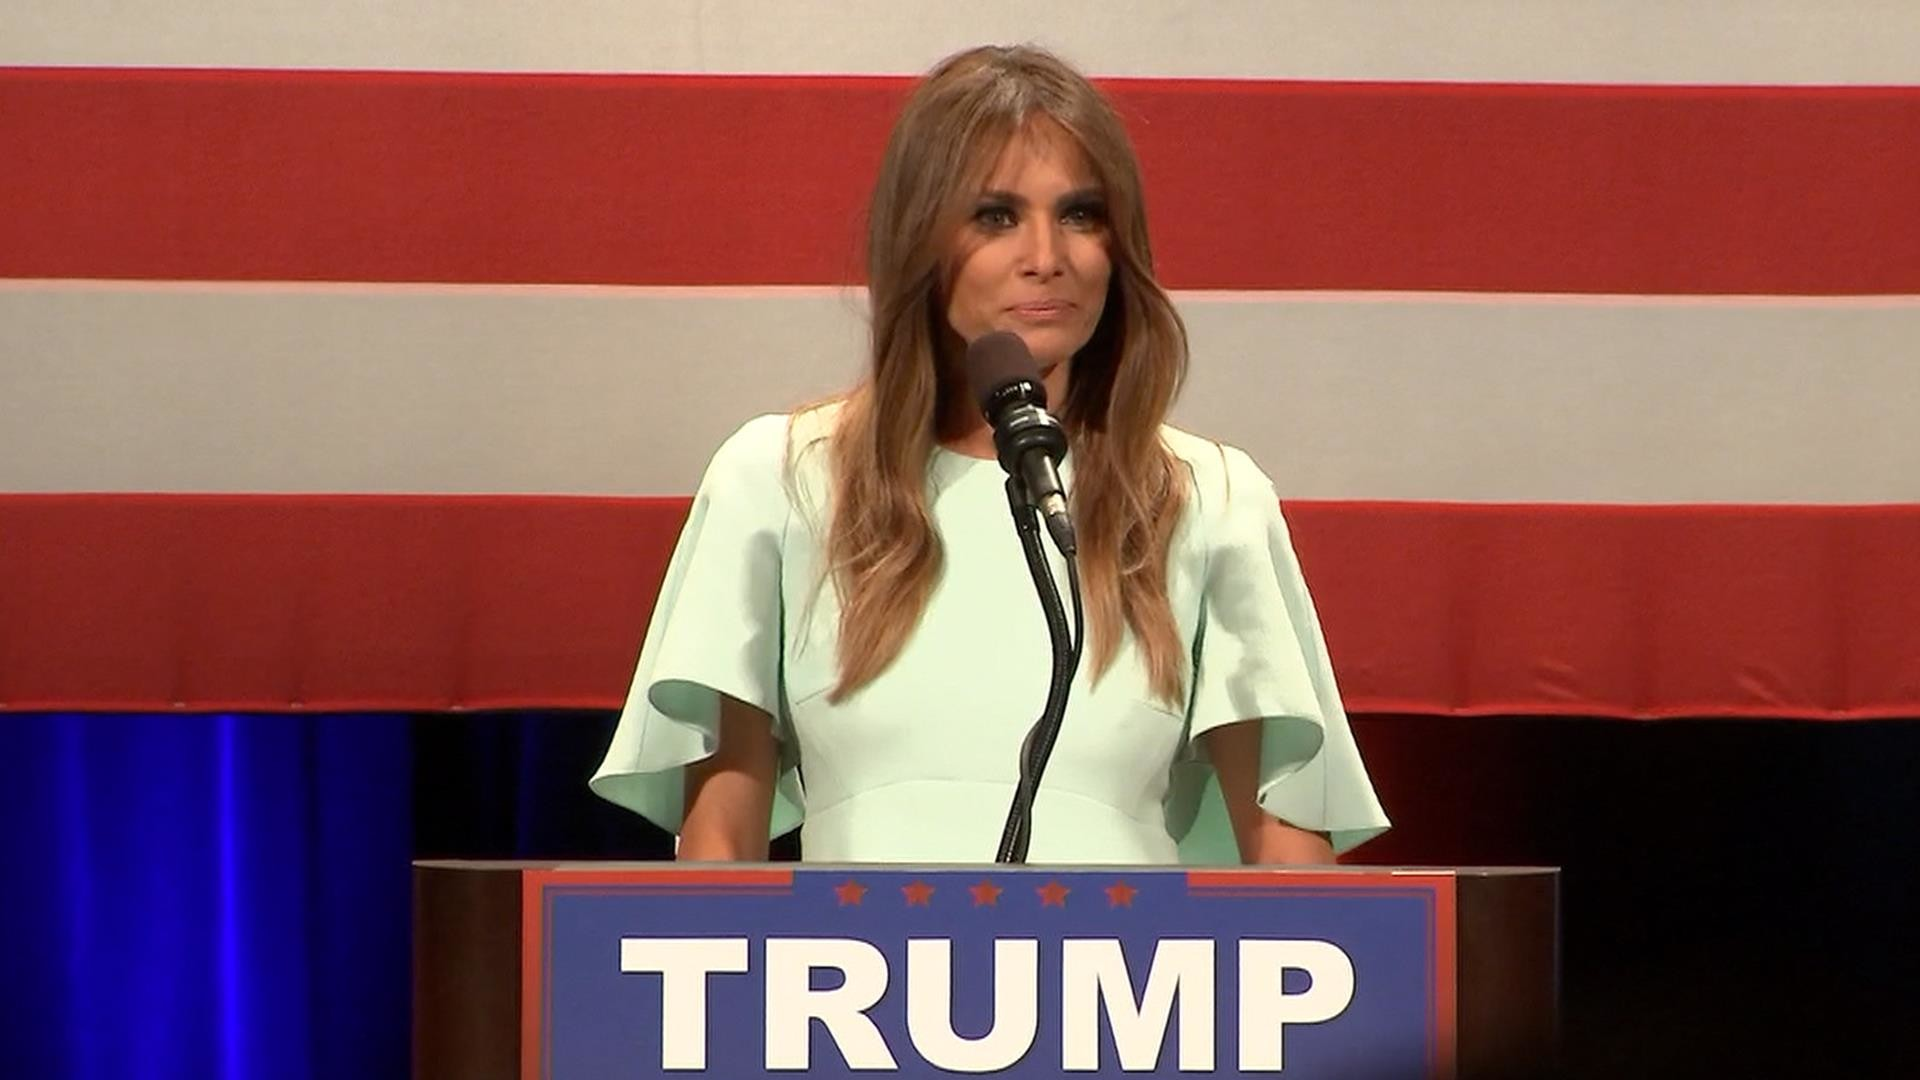 Melania Stumps for Donald Trump: 'He Will Punch Back 10 Times Harder' – NBC  News